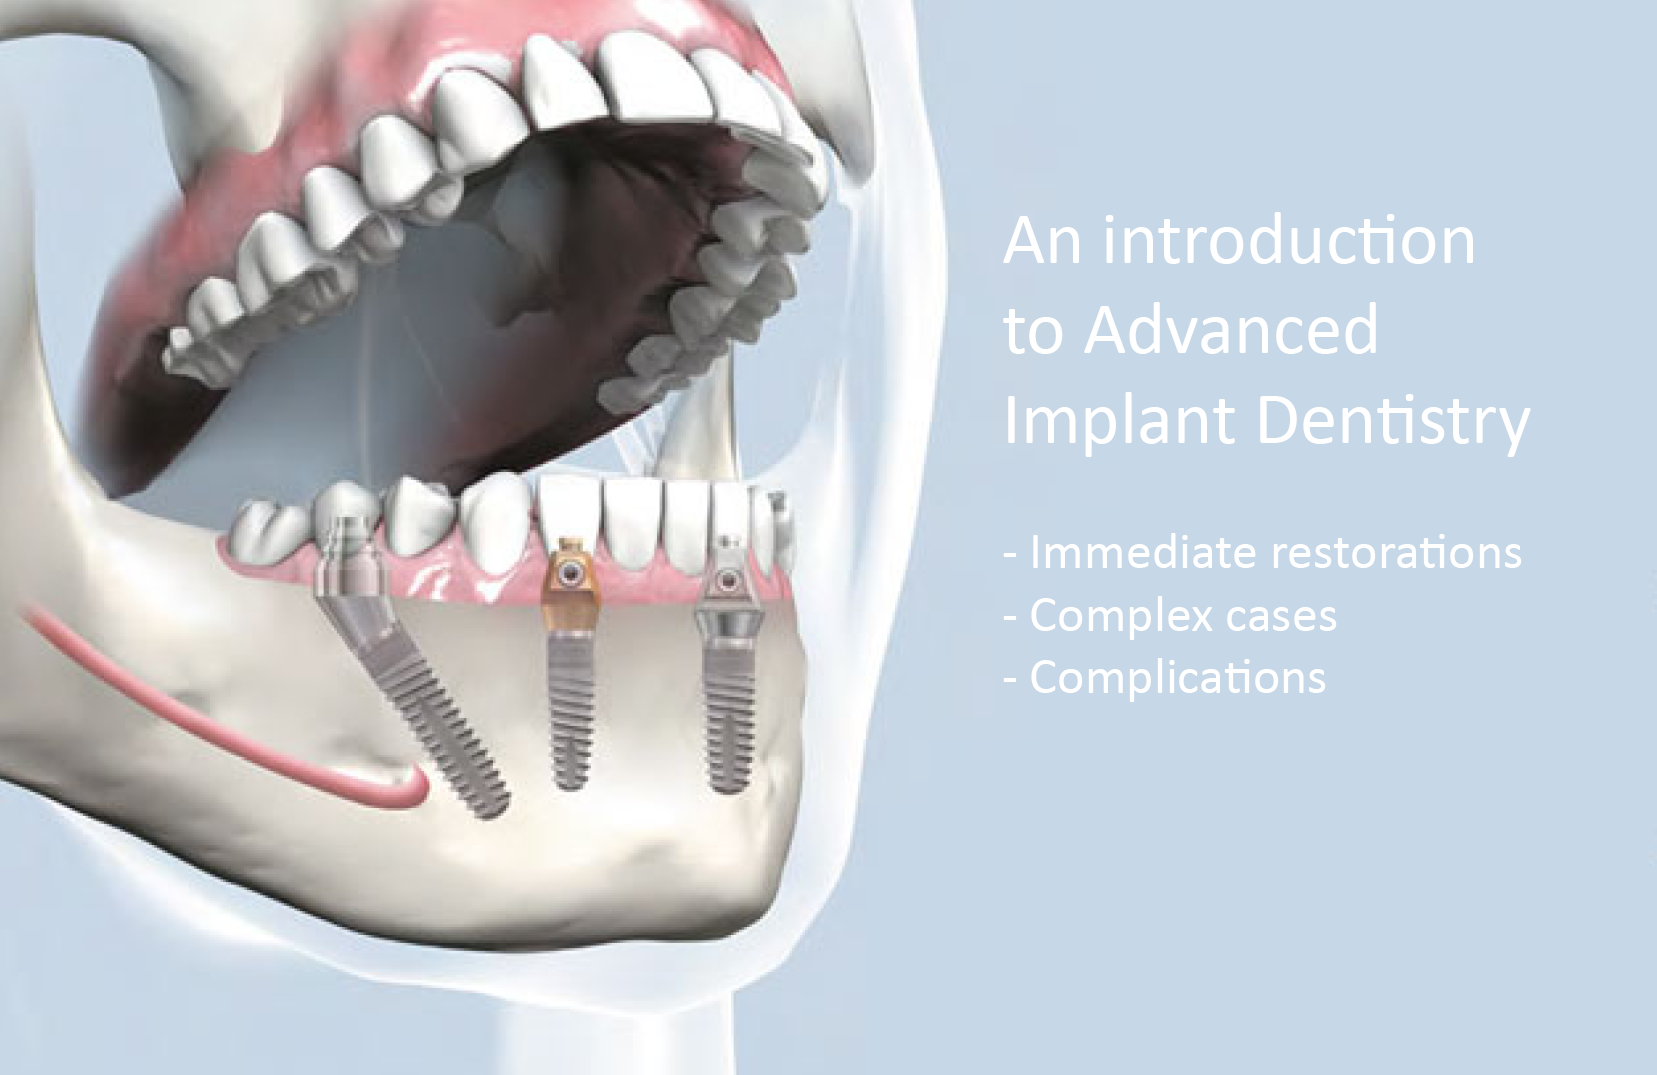 SDS Dental Implants Clinical Trial - Gary R. O'Brien, D.D.S.